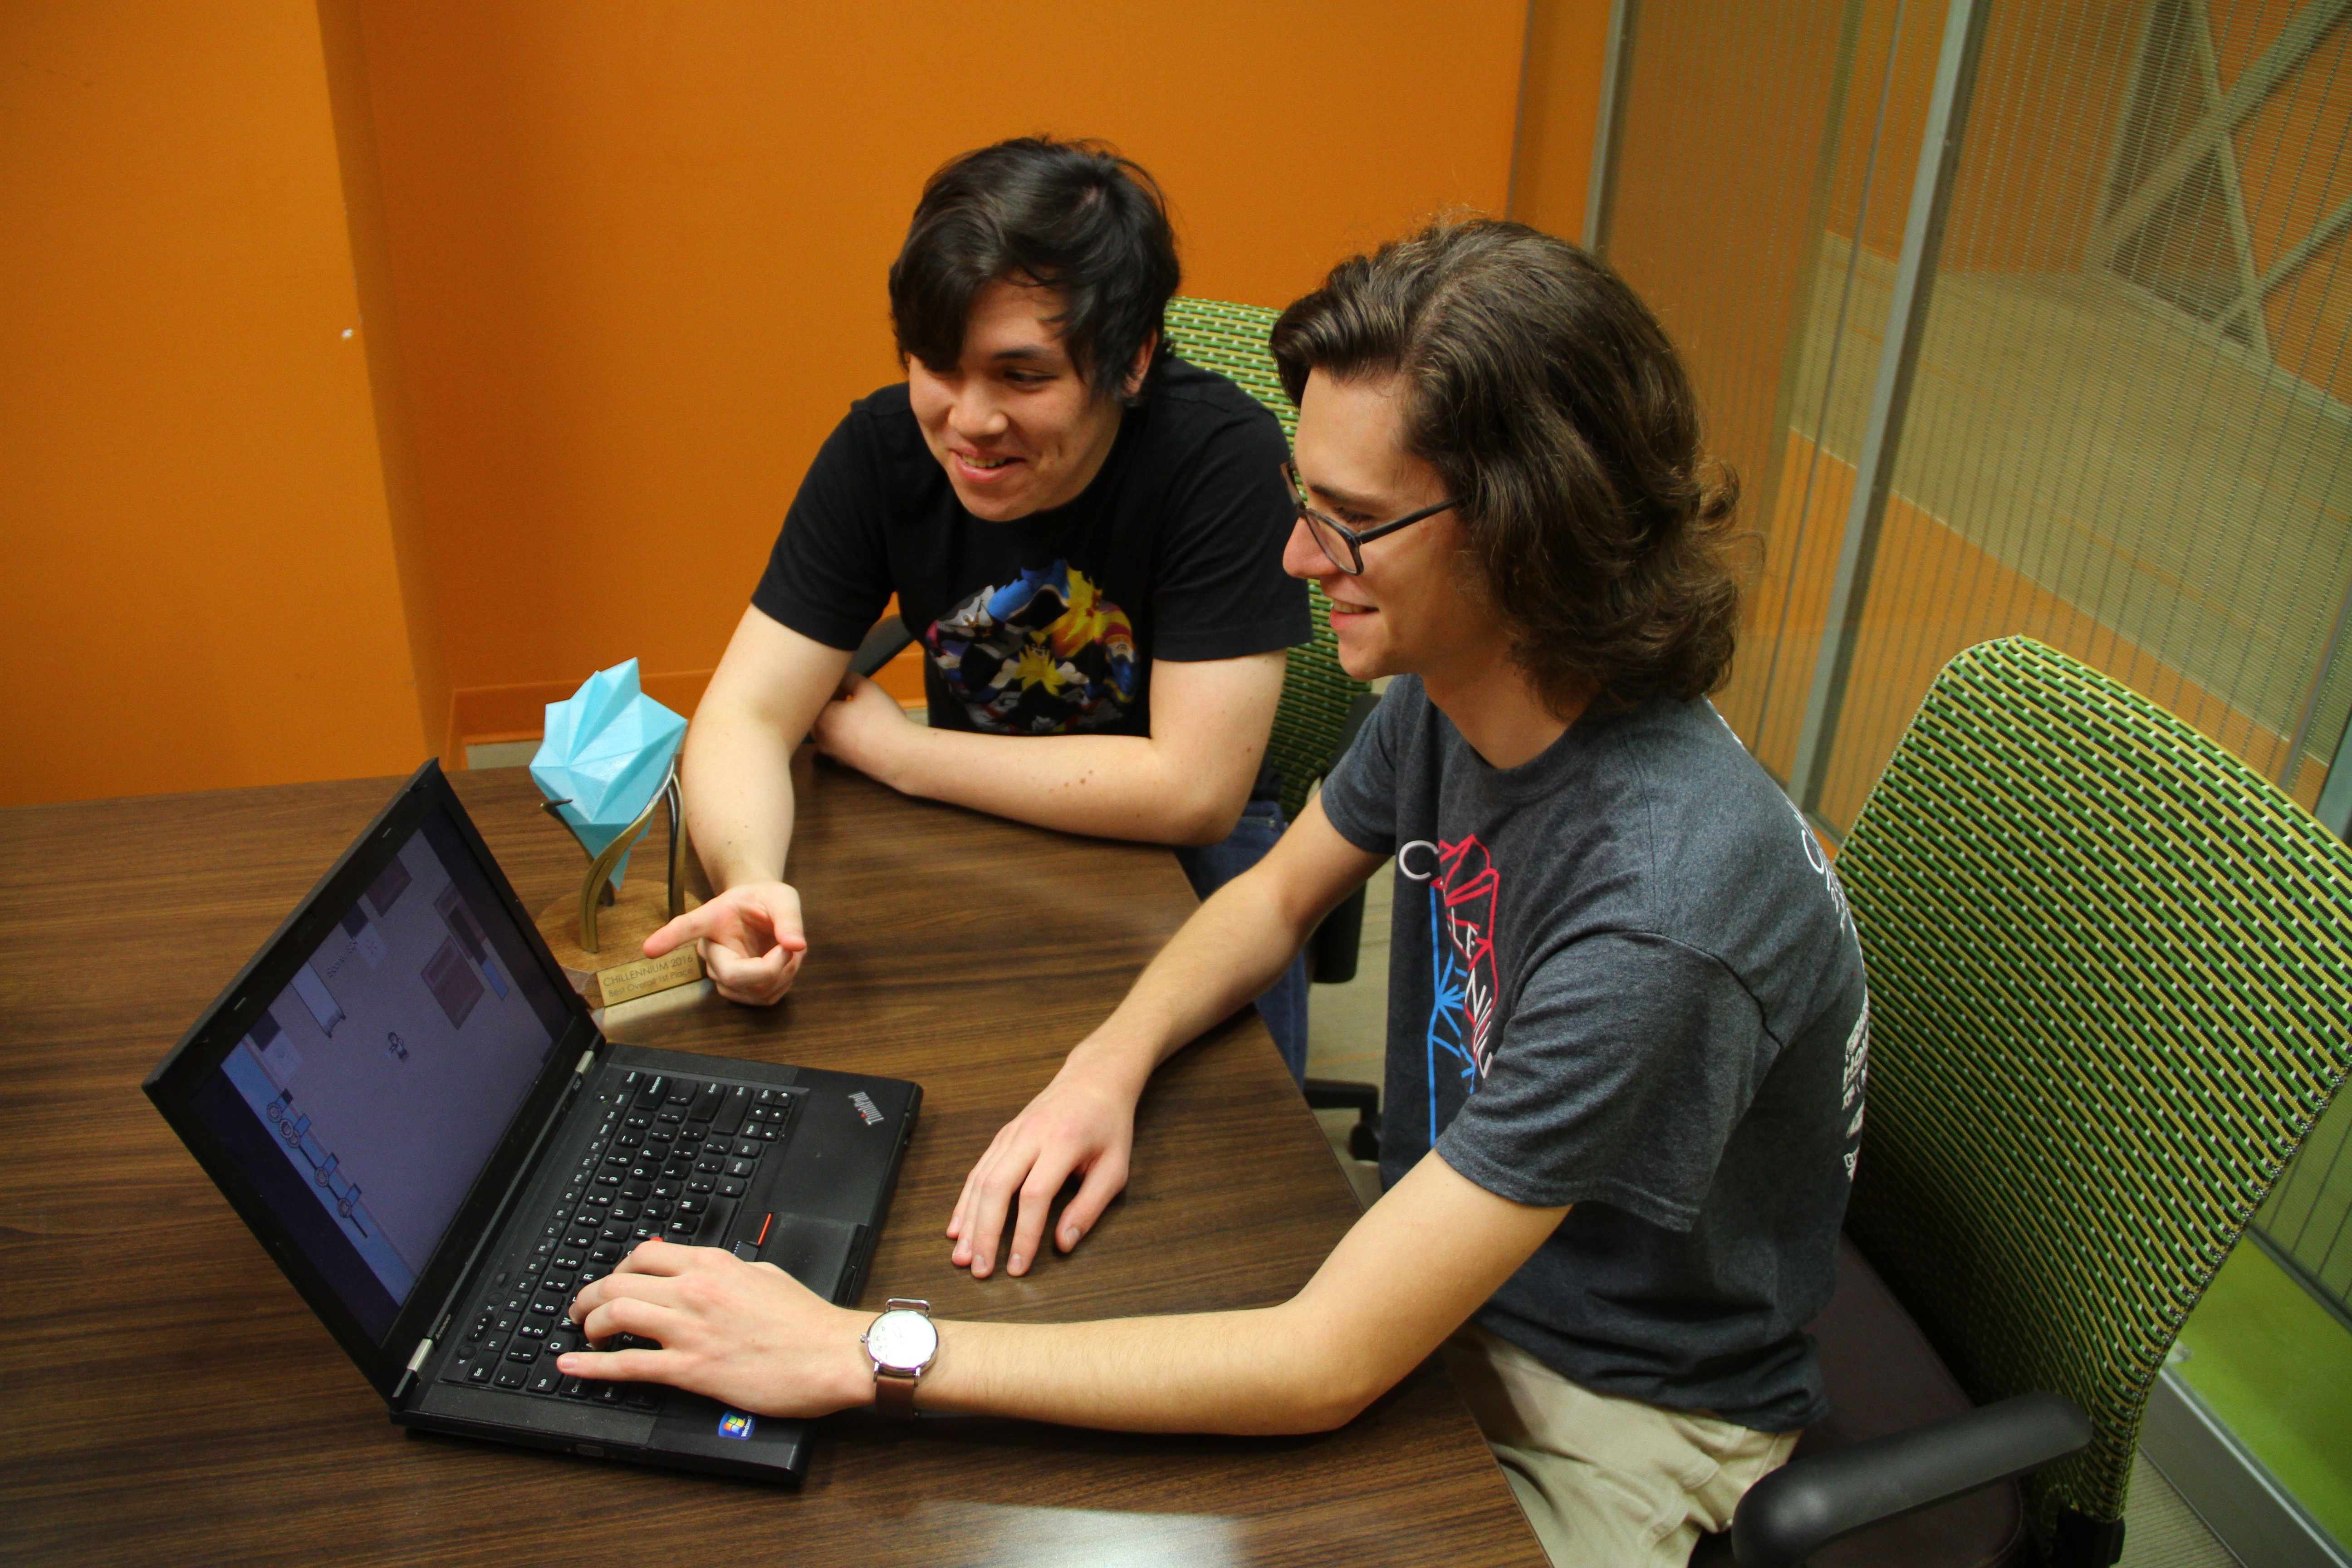 Juniors place first in nat'l game design competition